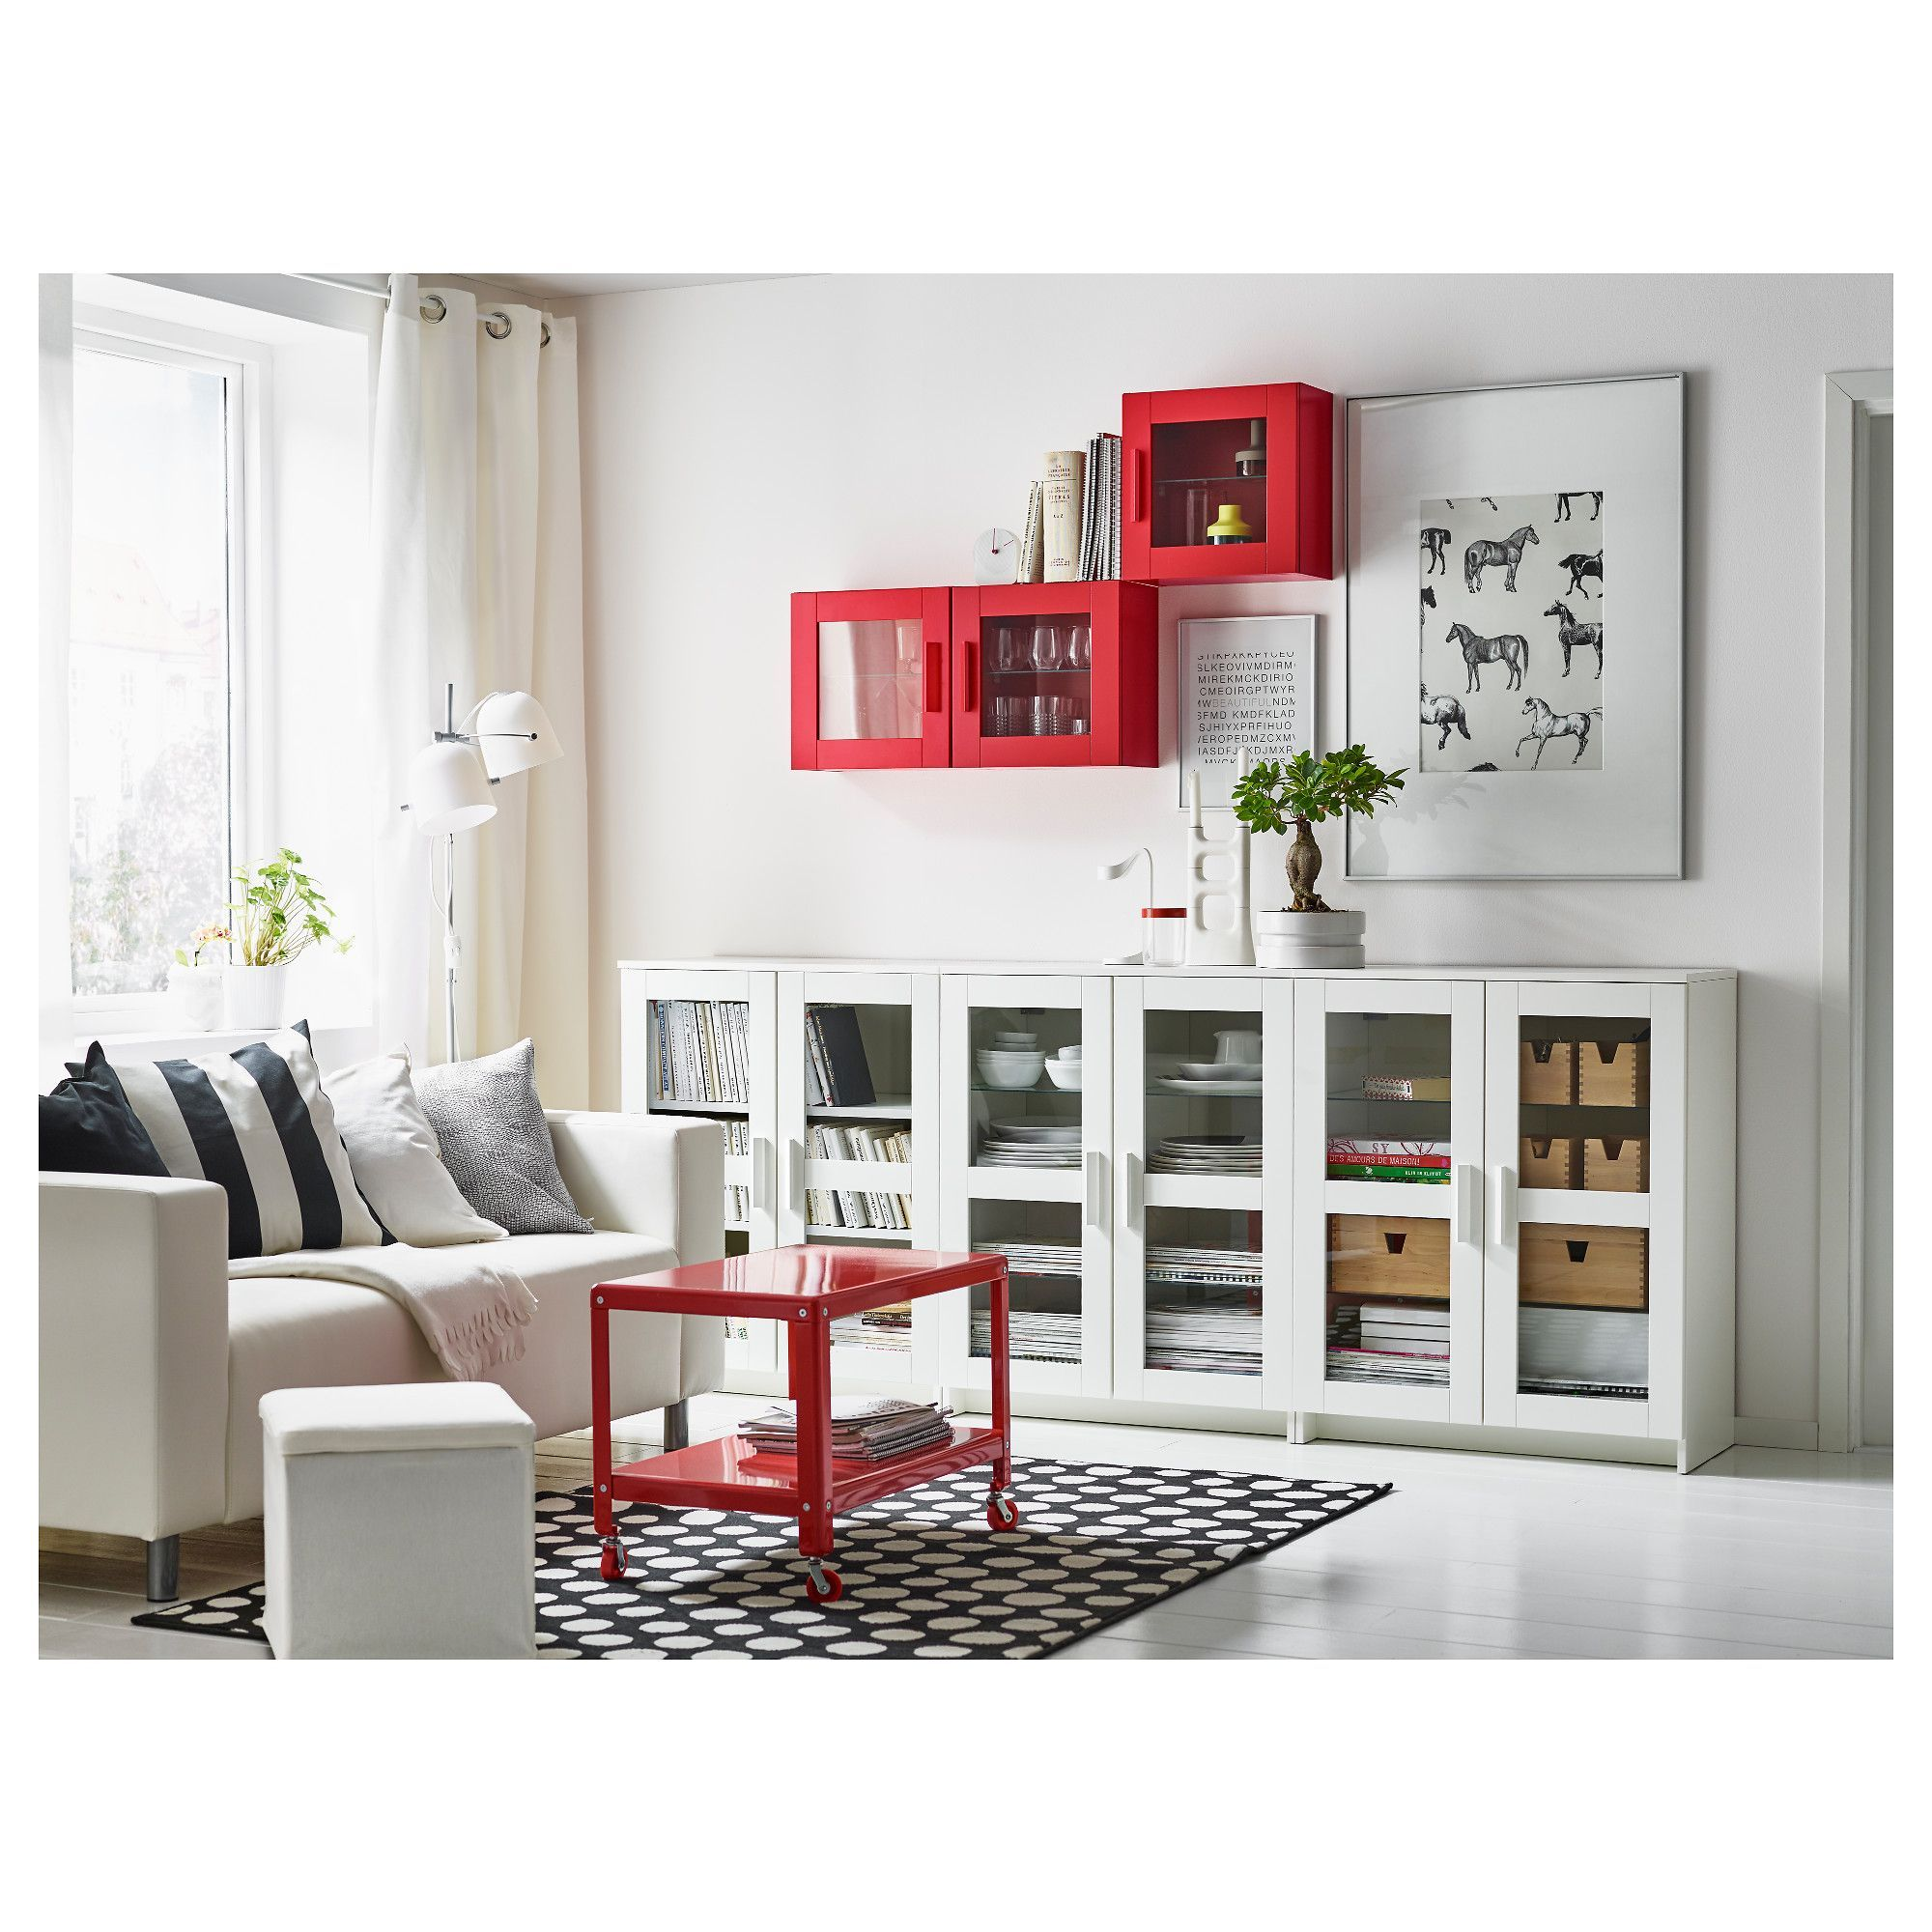 Ikea Brimnes Cabinet With Doors Glass Black Behind The Panel Doors You Can Keep Your Ikea Living Room Living Room Storage Living Room Storage Solutions